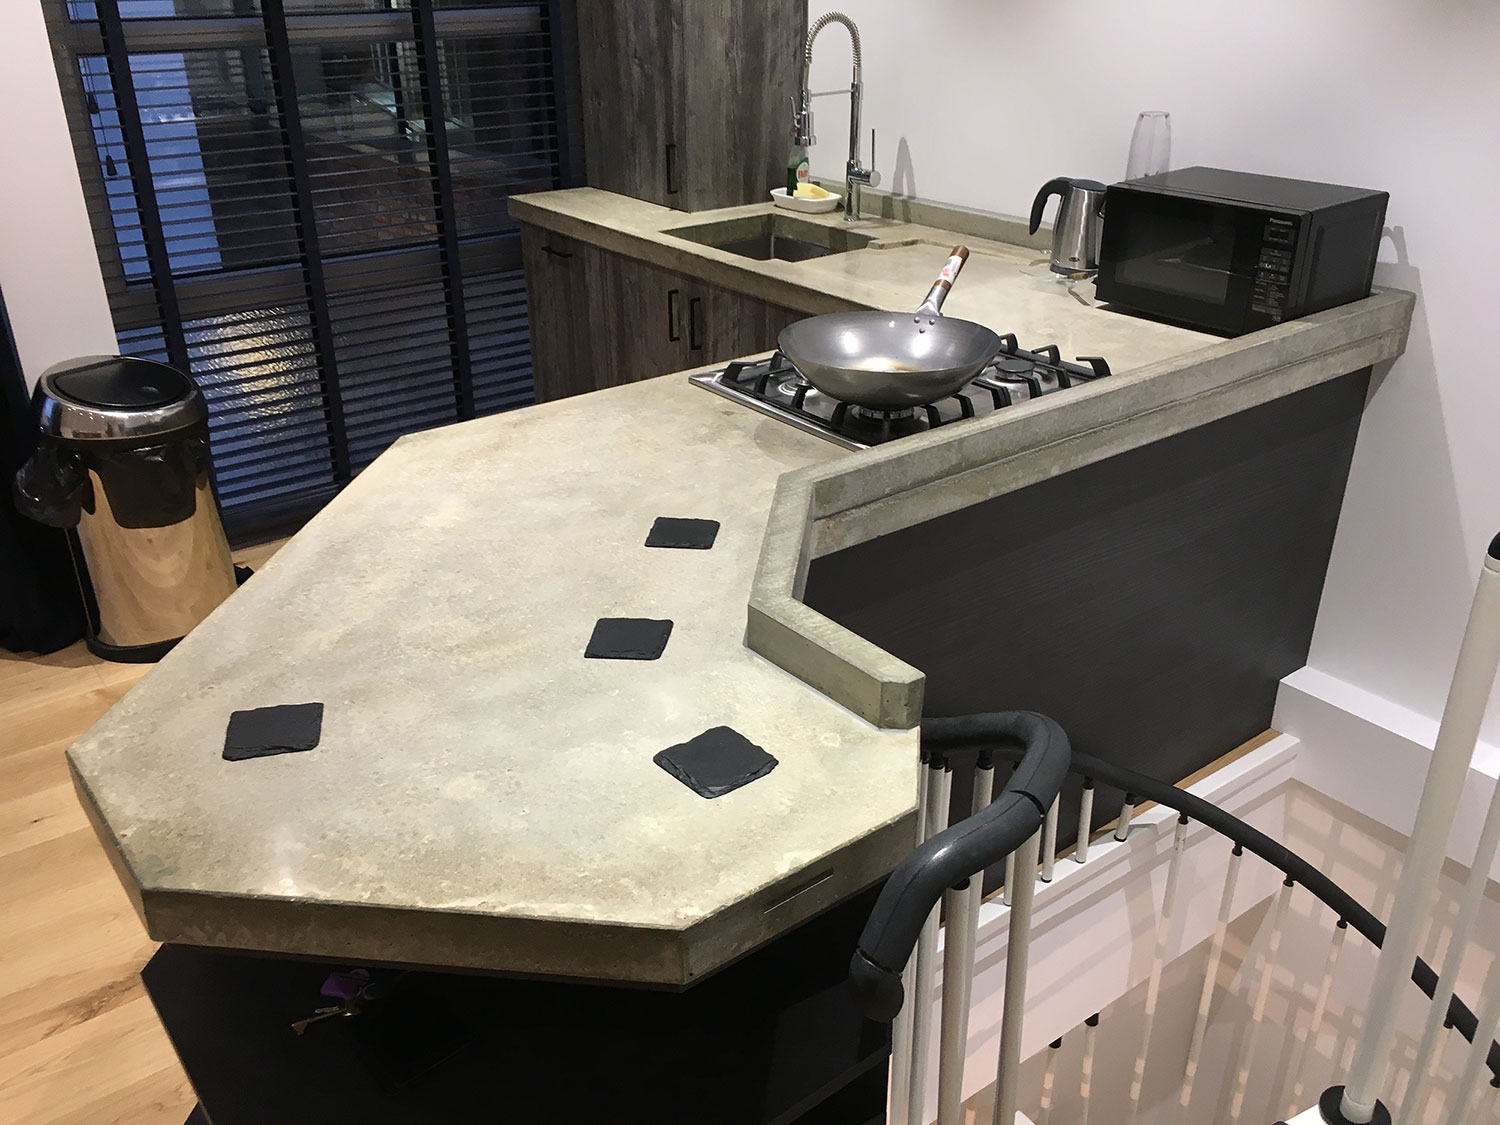 Conscious Forms -  bermondsey london polished concrete worktop seamless splashback detail landscape